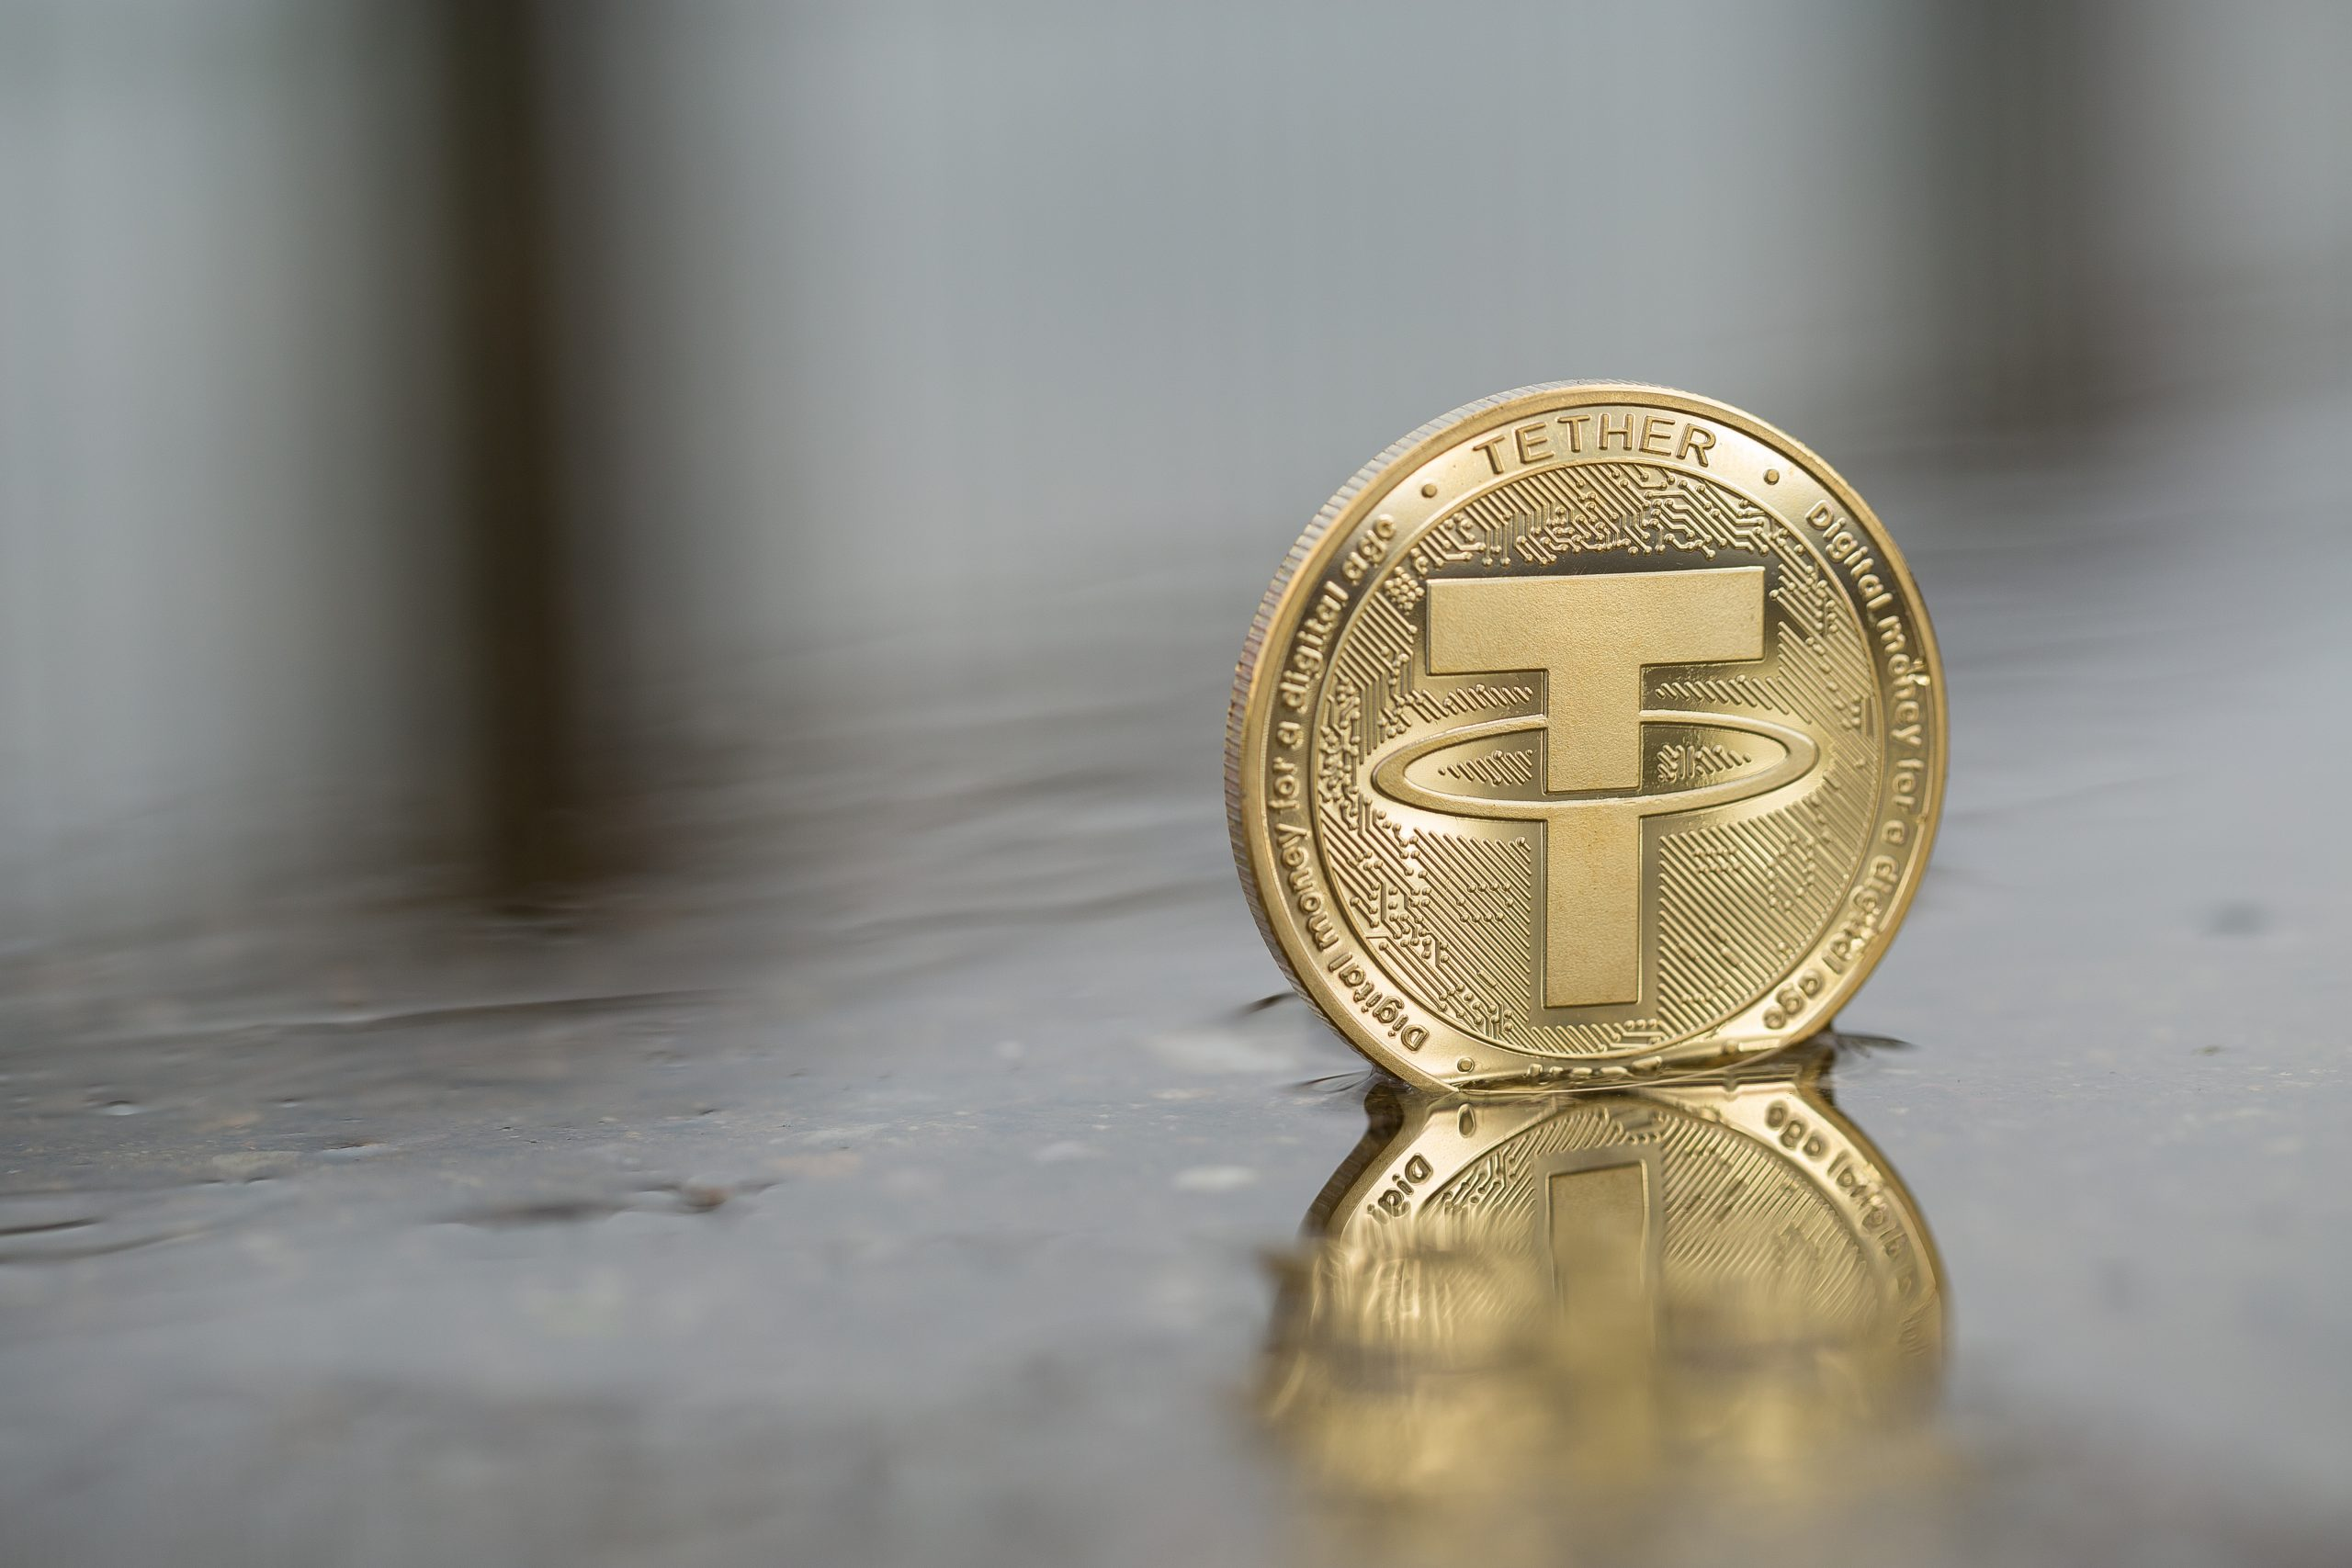 Is Tether Factual a Scam to Enrich Bitcoin Investors?